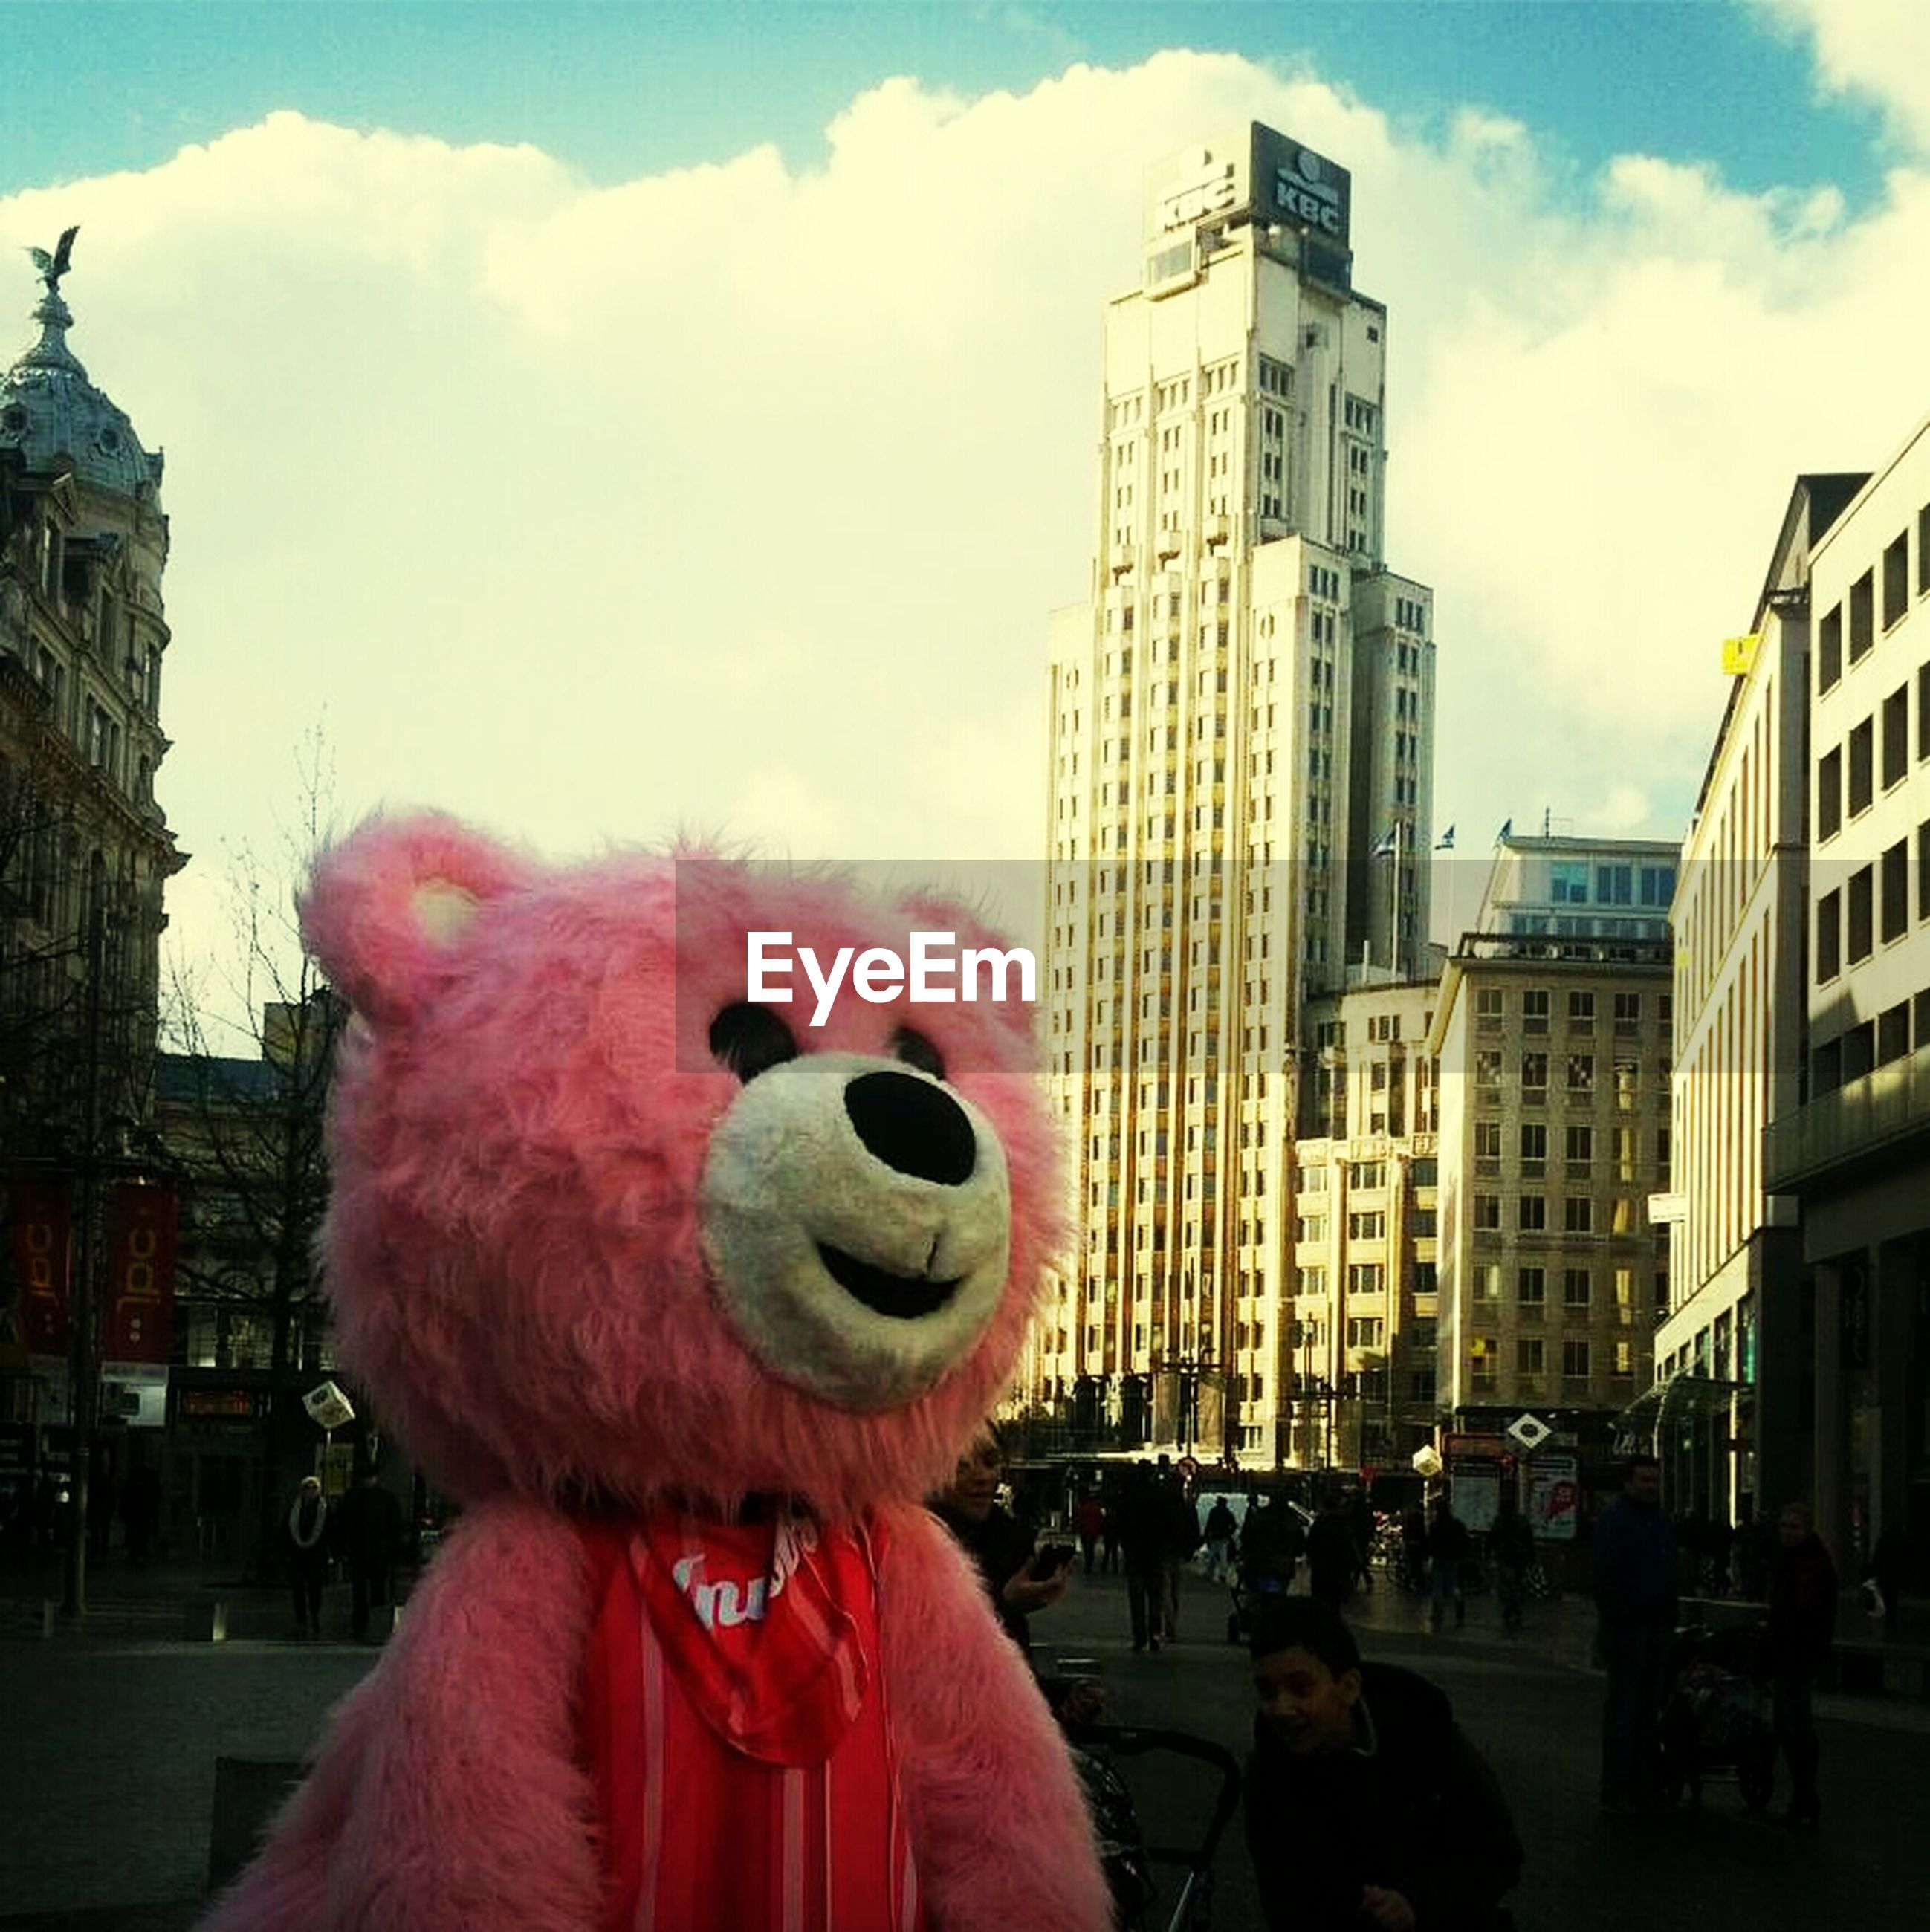 Large pink teddy bear on the road against buildings